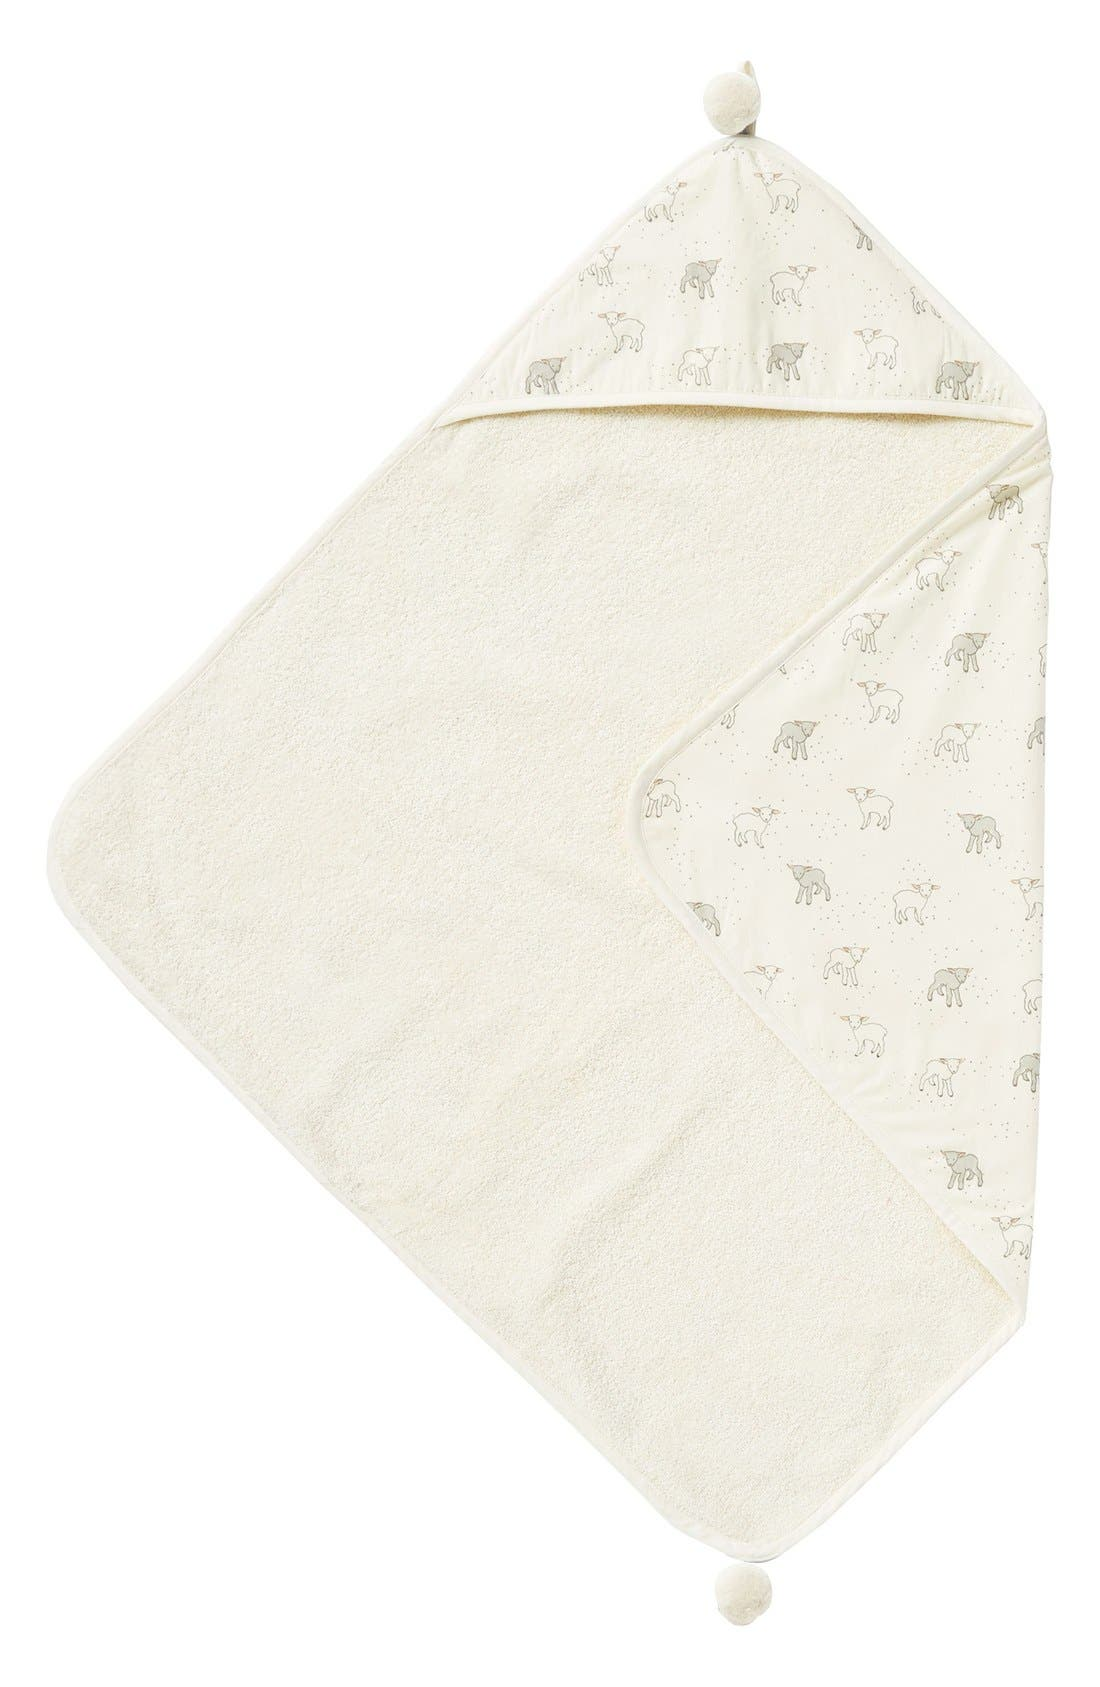 Little Lamb Print Hooded Towel,                             Main thumbnail 1, color,                             CREAM